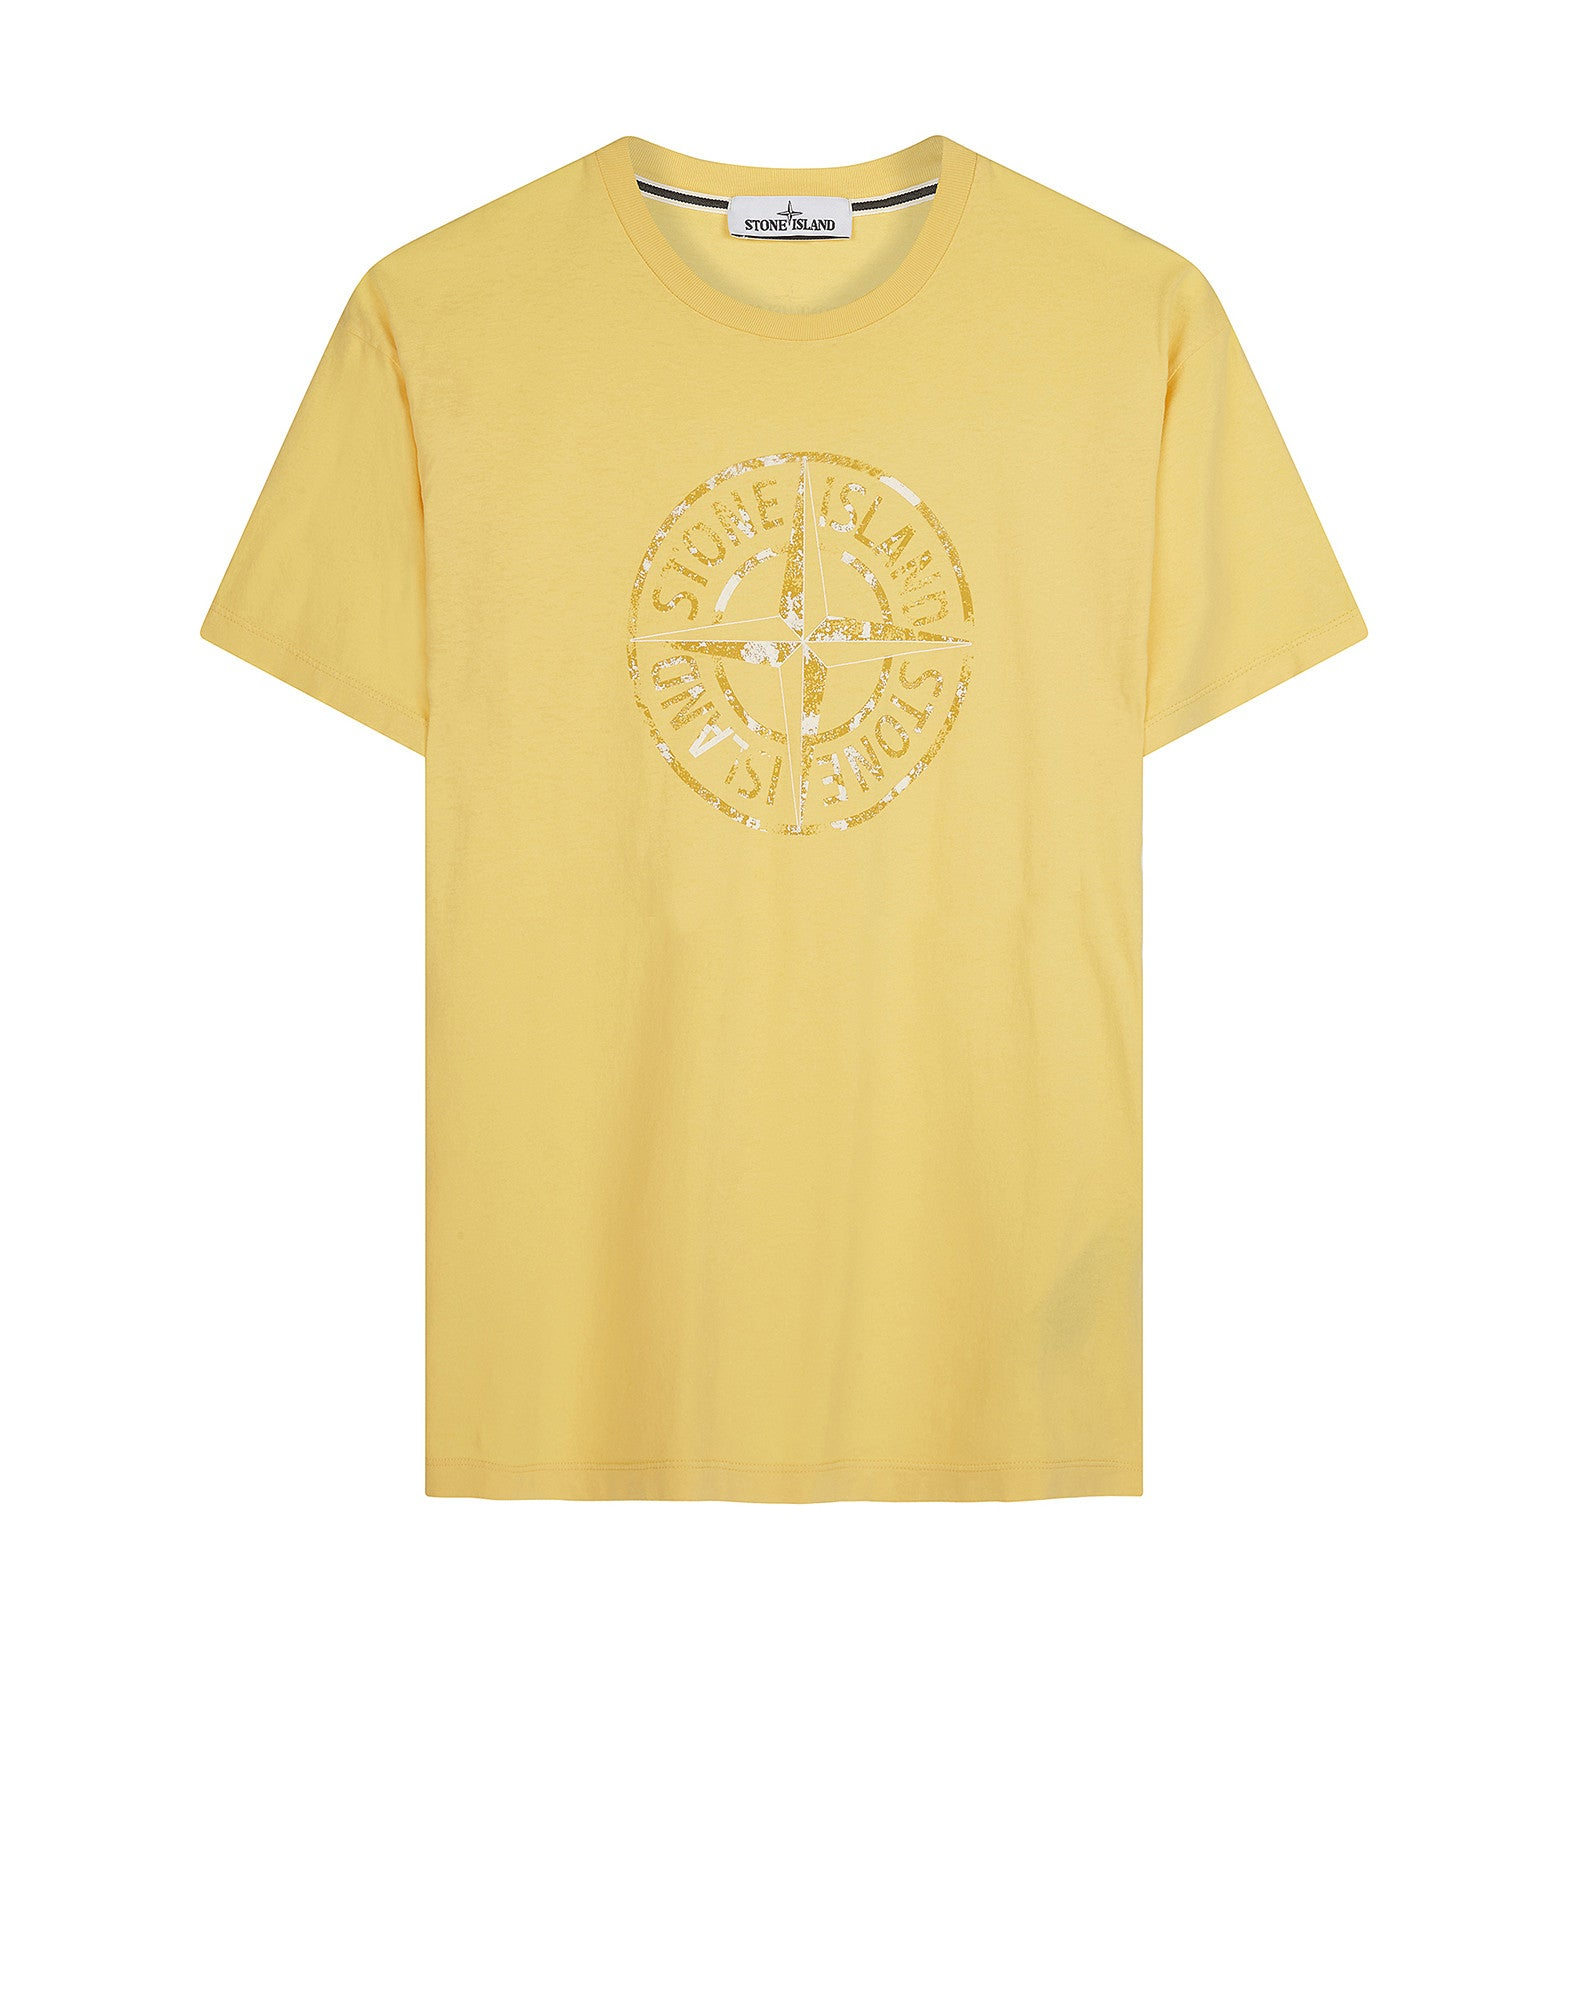 2NS87 'STONE ISLAND' T-Shirt in Yellow